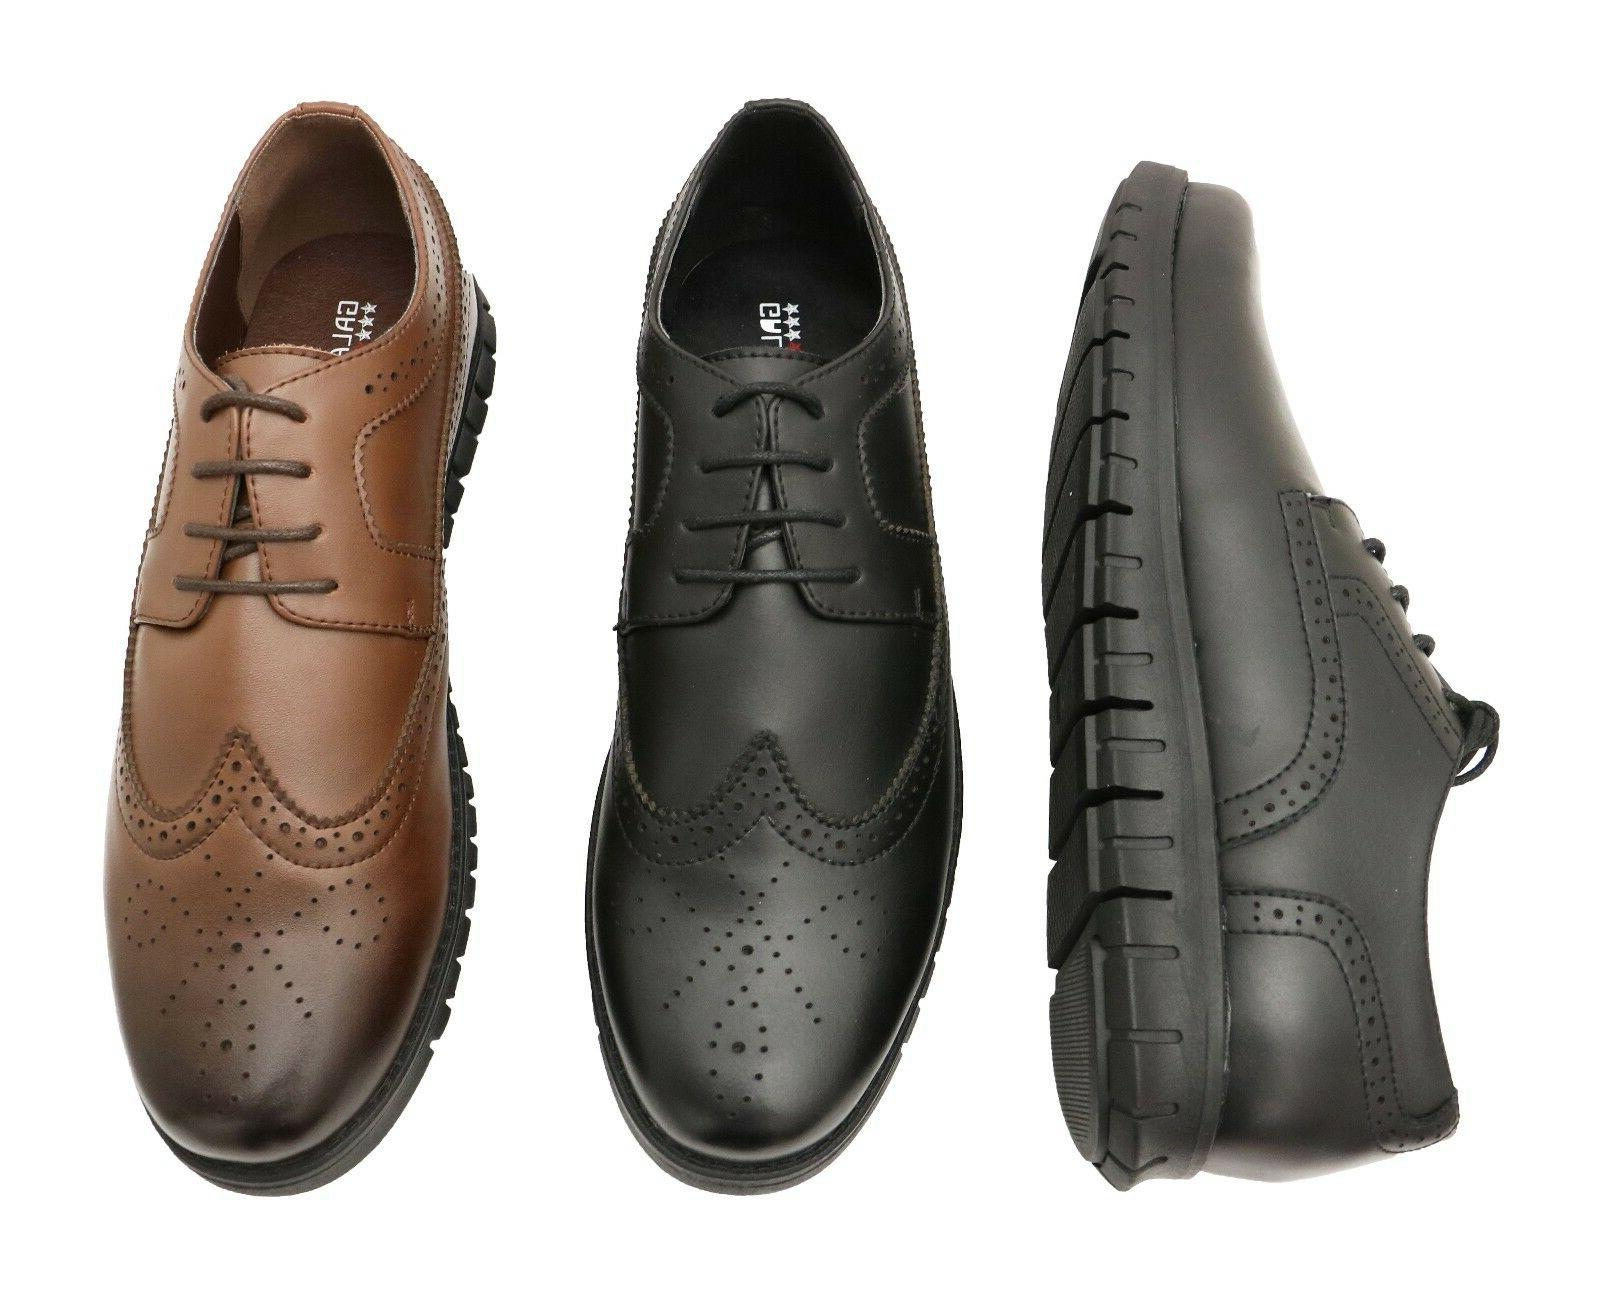 Mens Leather Shoes Oxford Loafers Lace up Work Casual Dress